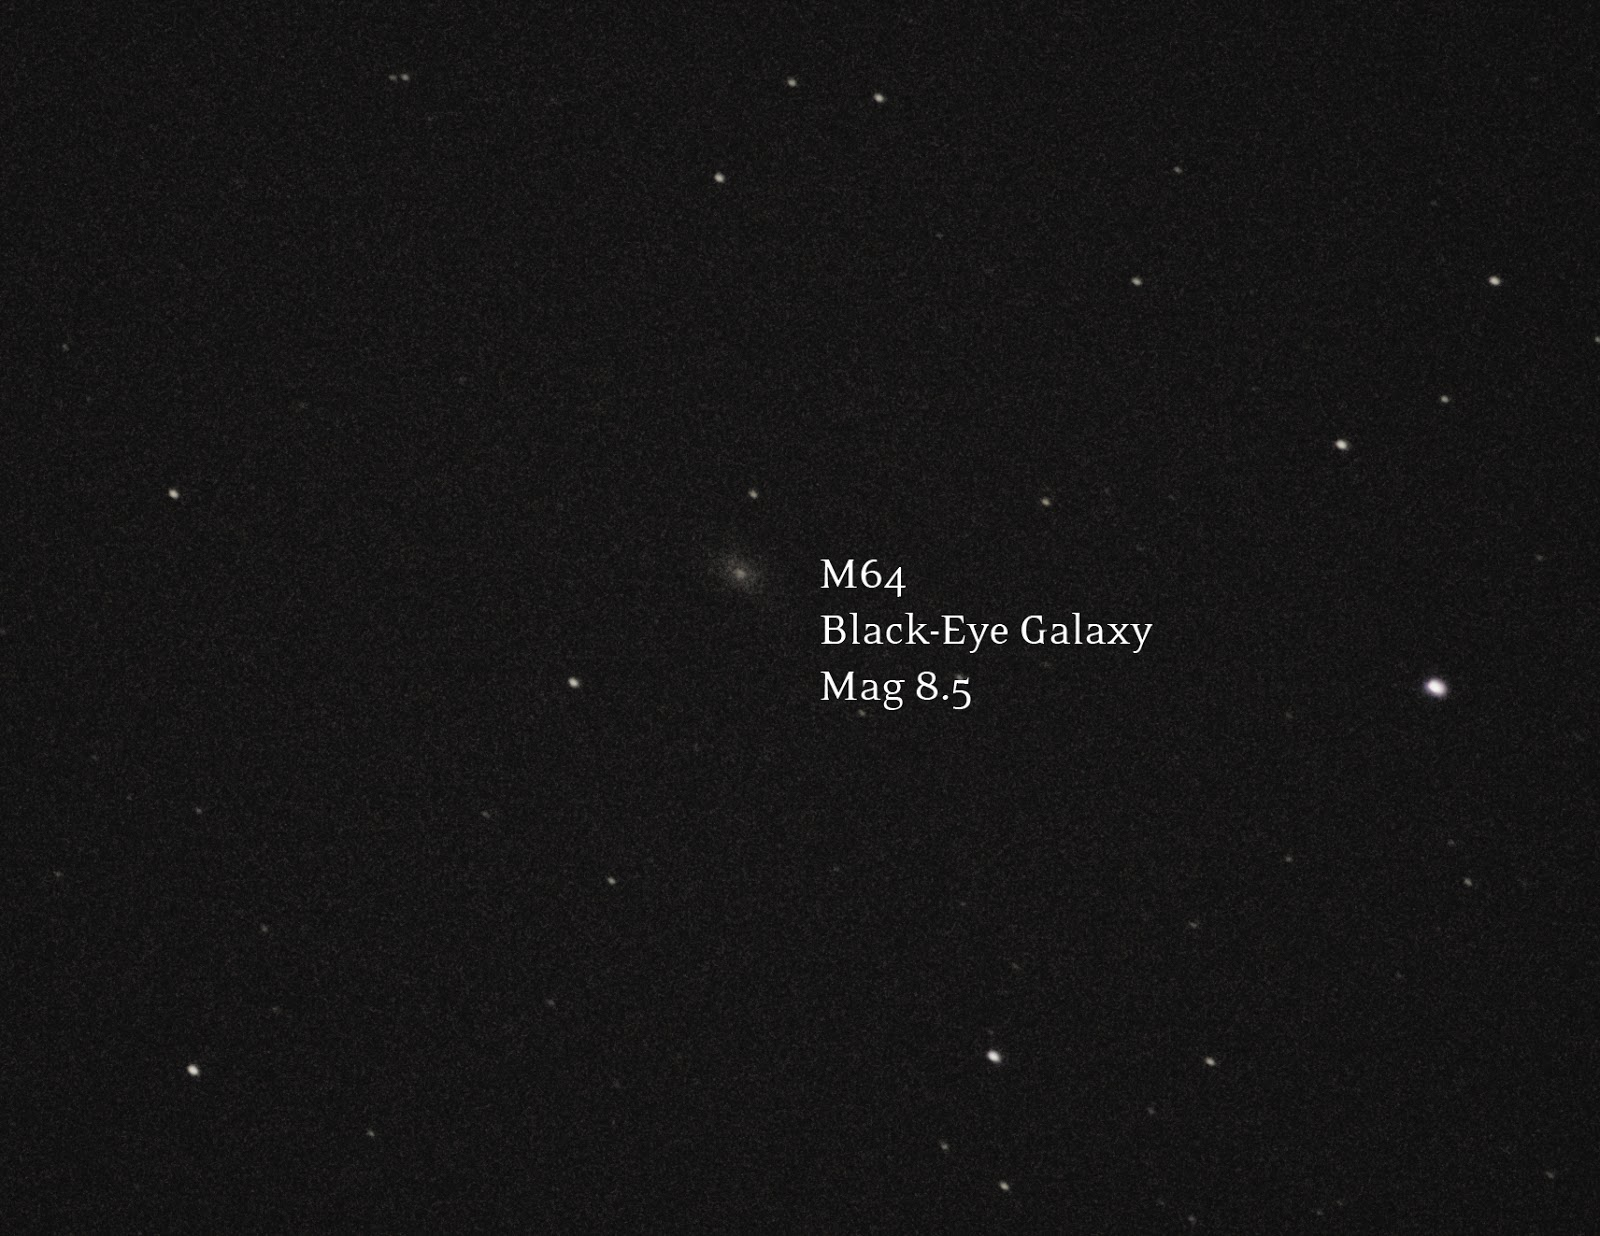 Black-Eye Galaxy M64